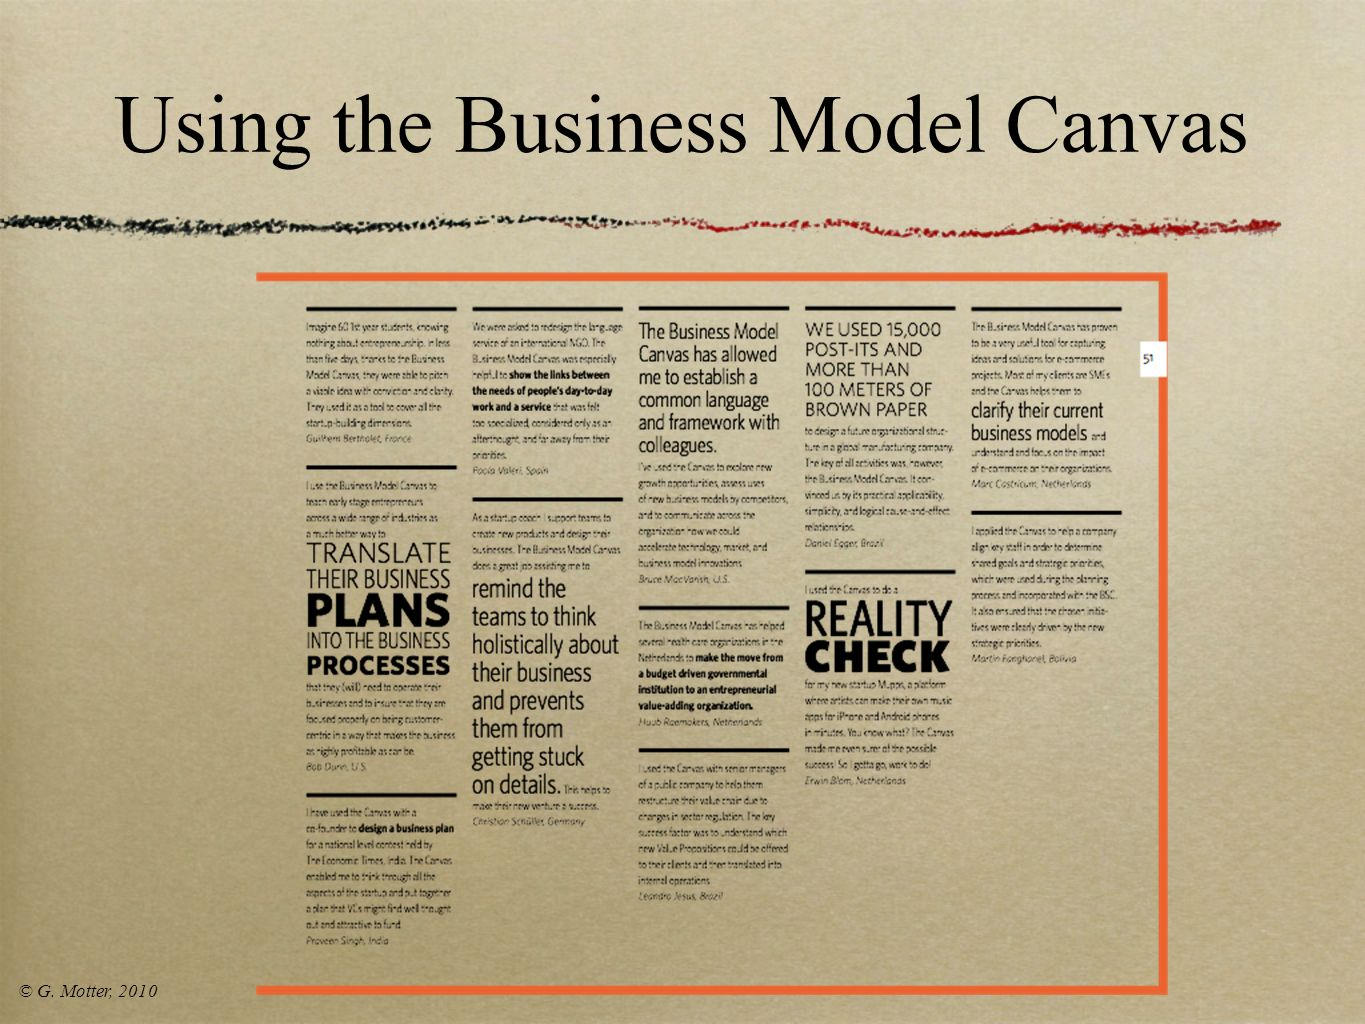 Using the Business Model Canvas